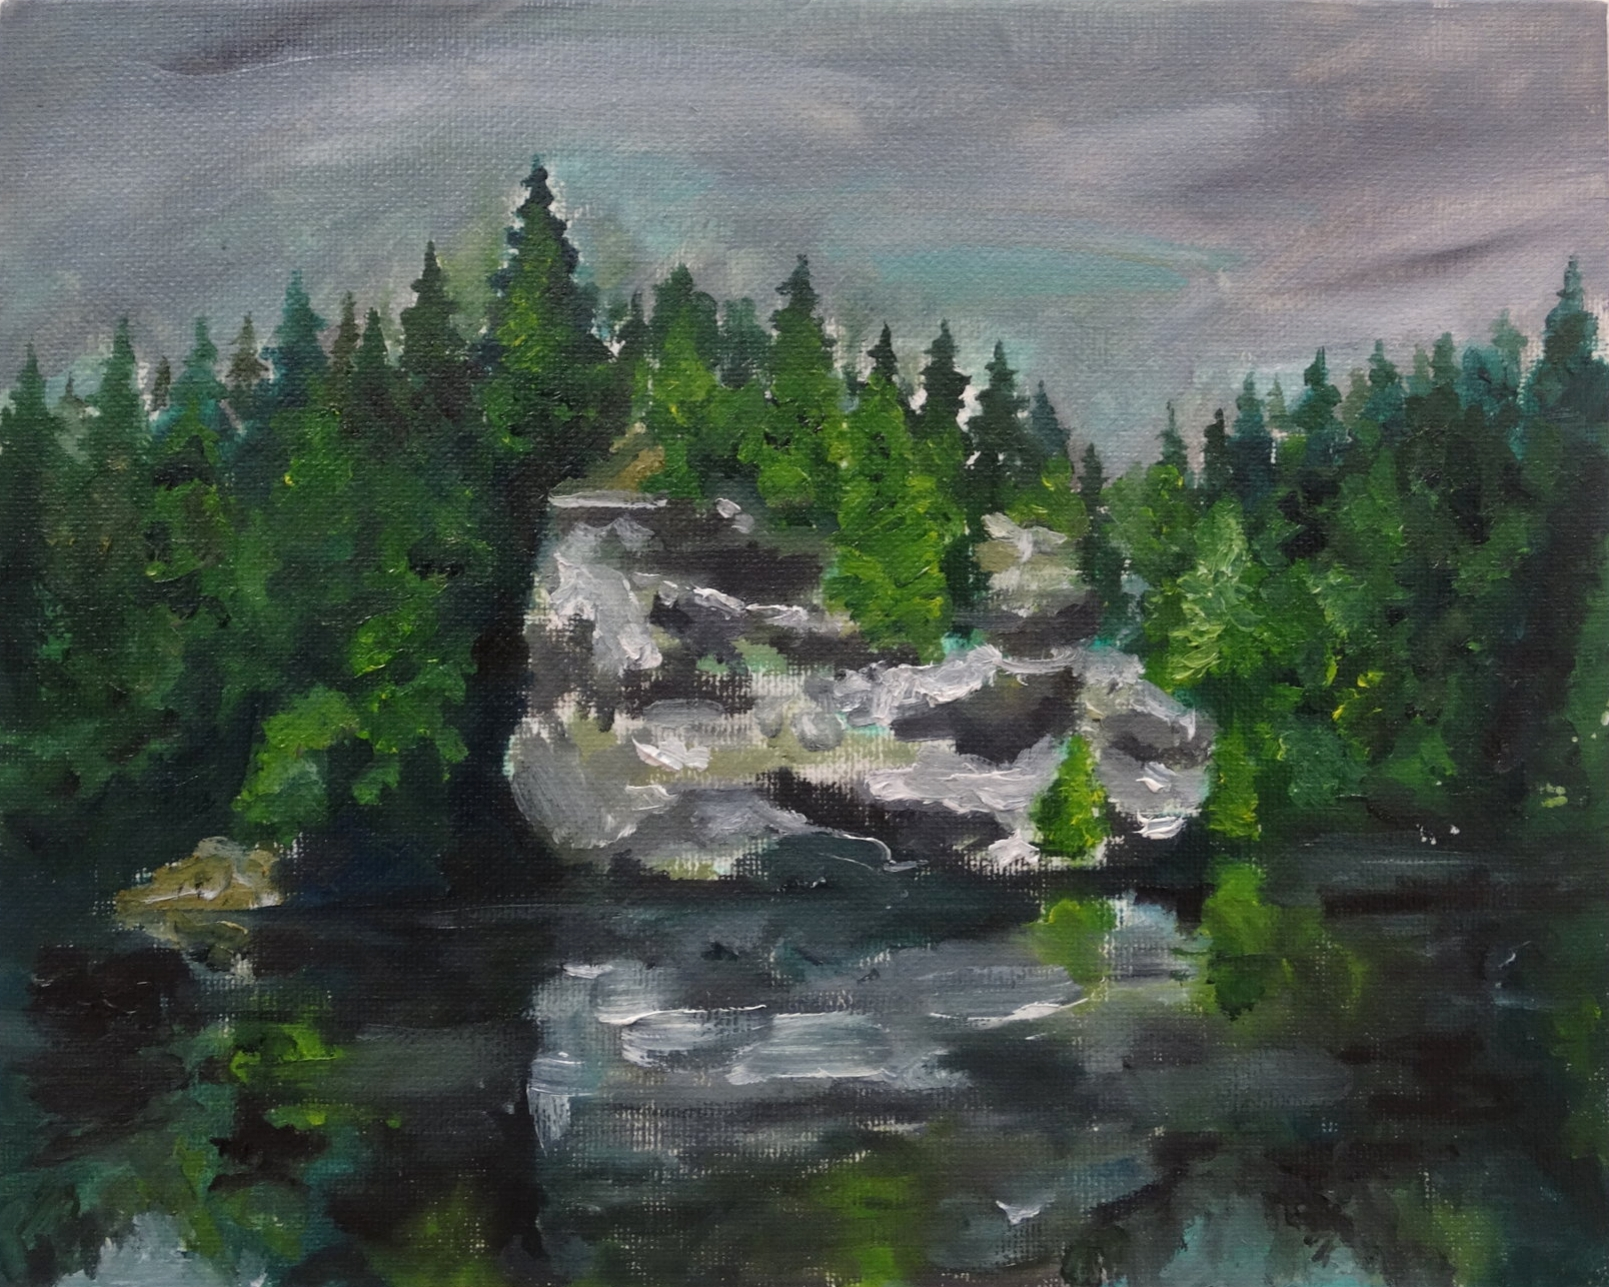 Big Rock, Eramosa River (2016)